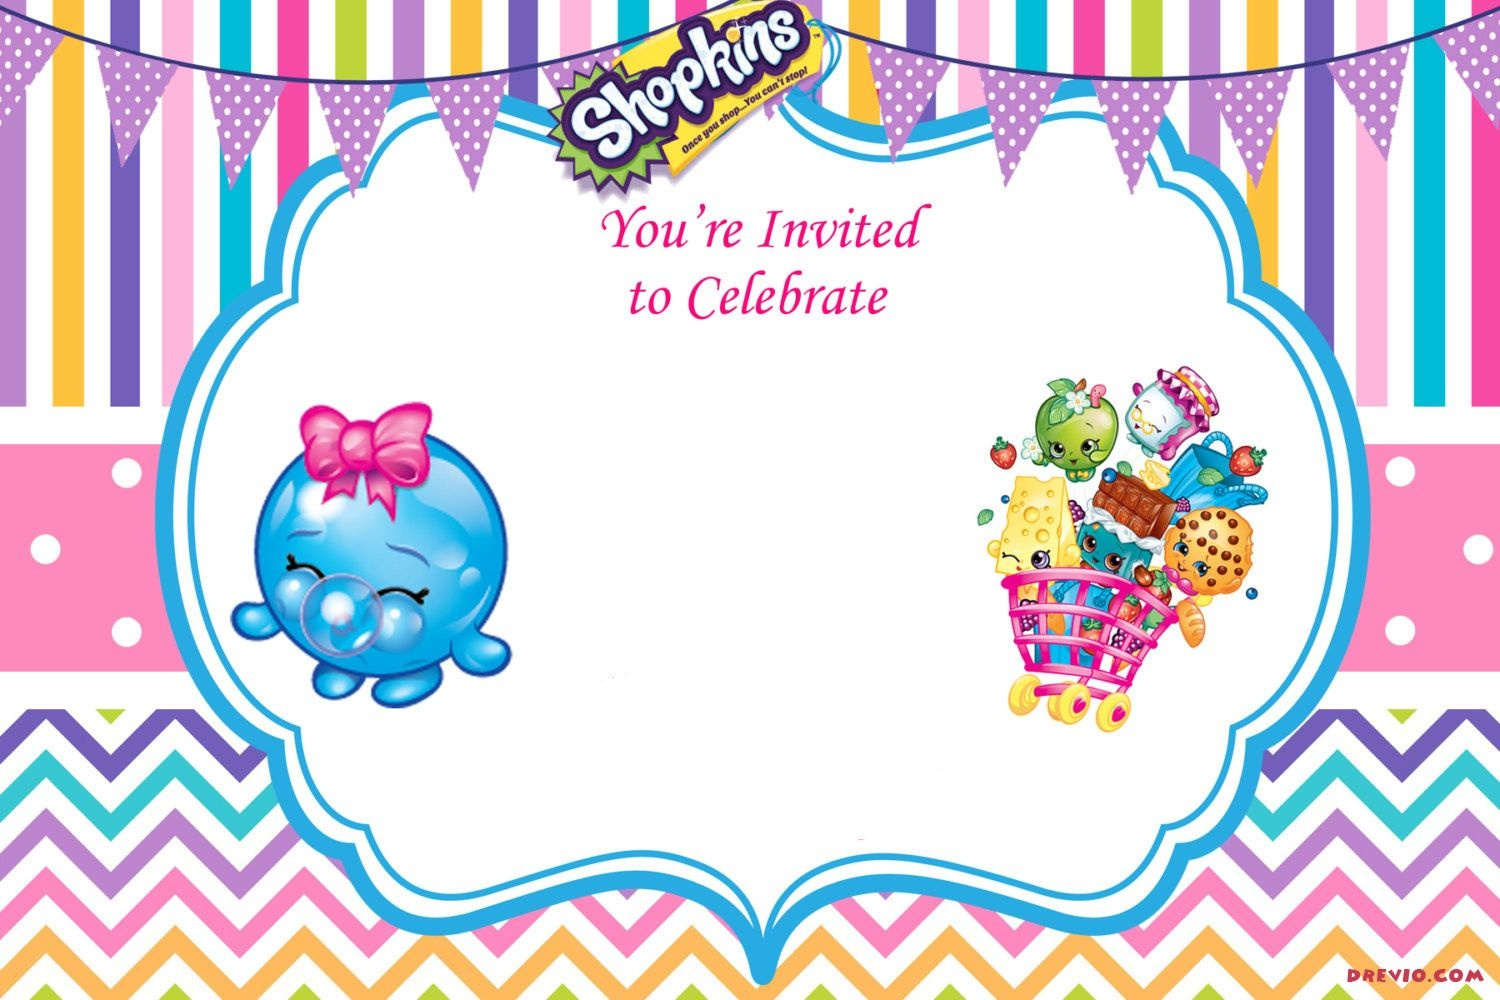 Updated - Free Printable Shopkins Birthday Invitation | Event - Free Printable Shopkins Birthday Invitations